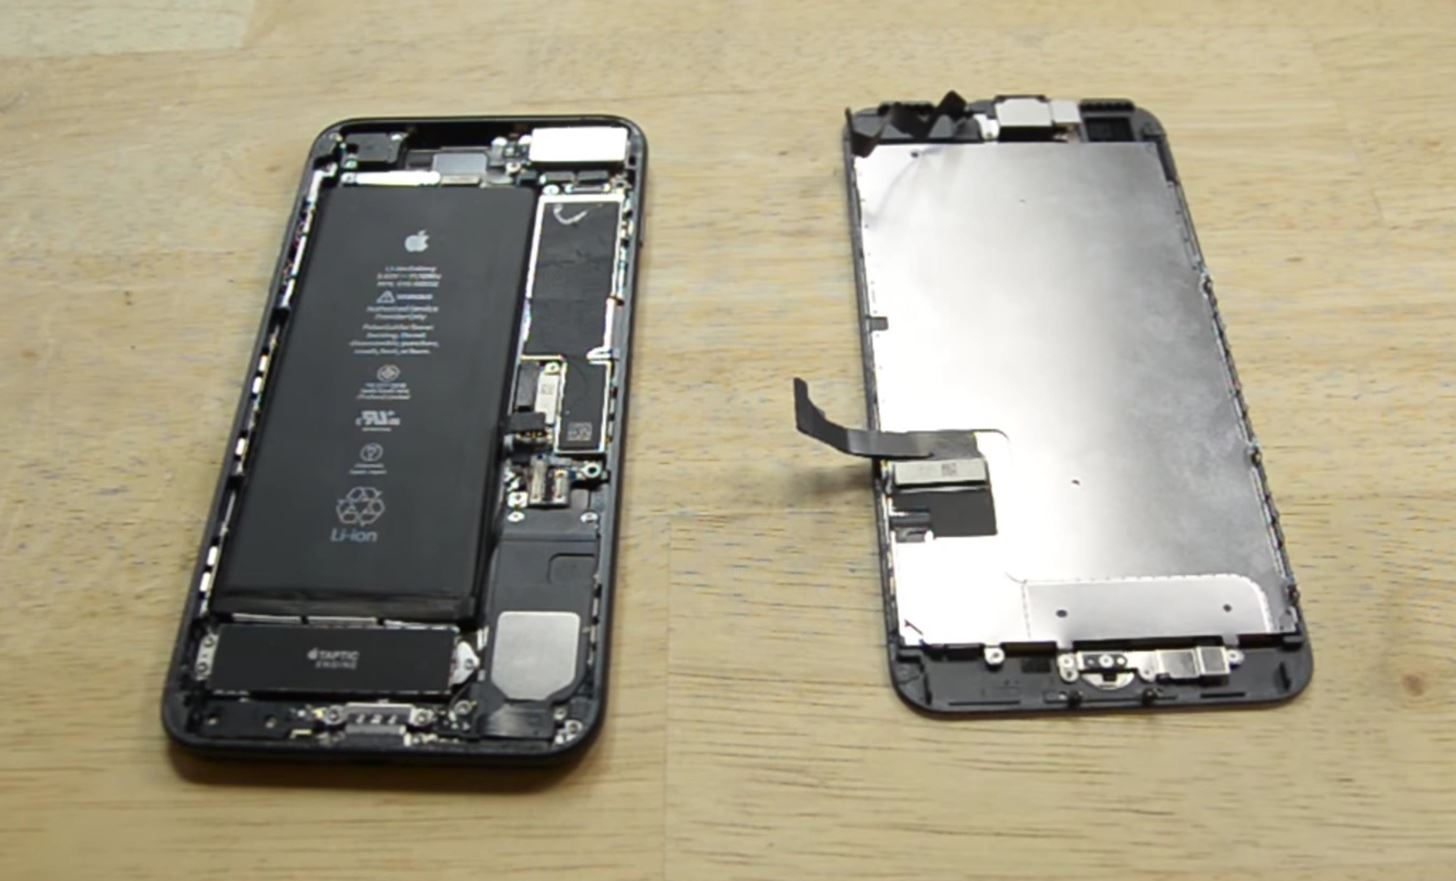 Tips from a Tech: Save Money on iPhone Repairs by Knowing Your Options